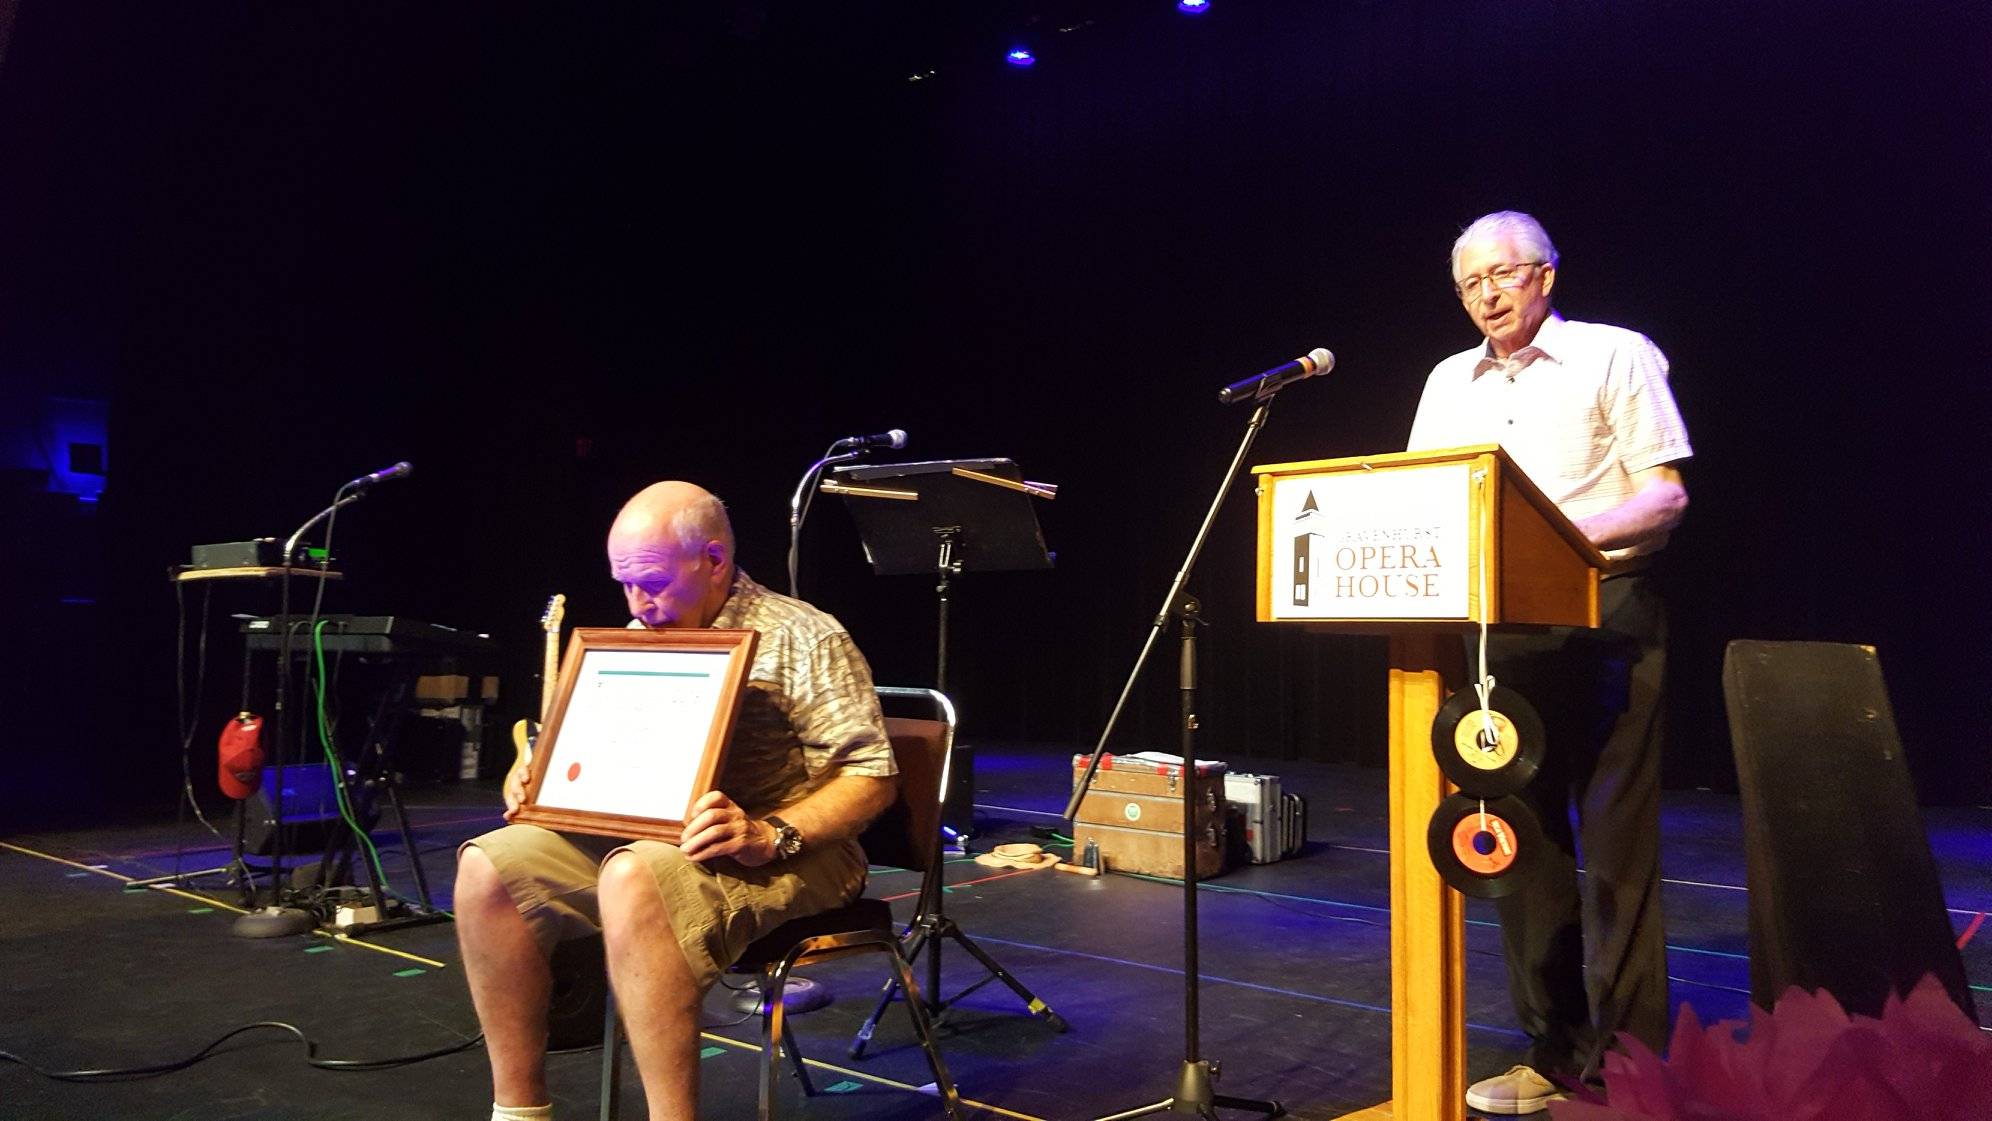 Award winner John Cooper ( sitting with his certificate) and Fred Hurd speaking. Fred was one of the people who nominated John.